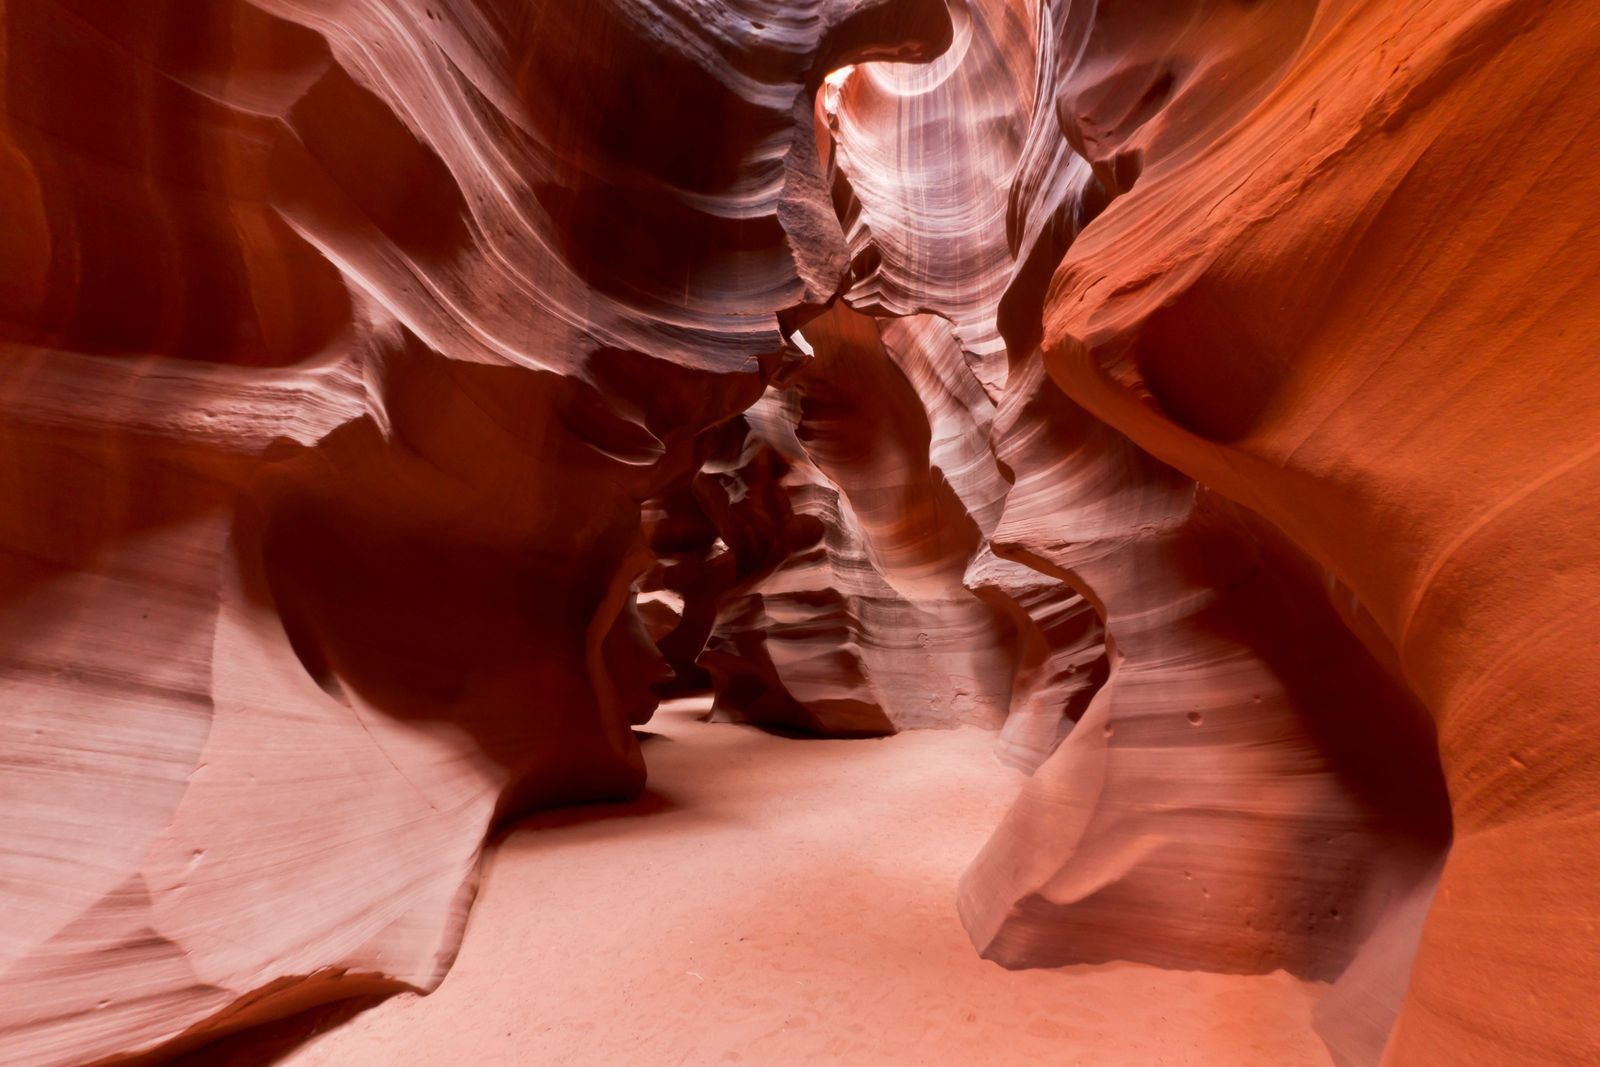 The most famous of Arizona's slot canyons, Antelope Canyon has long been a photographic draw thanks ...